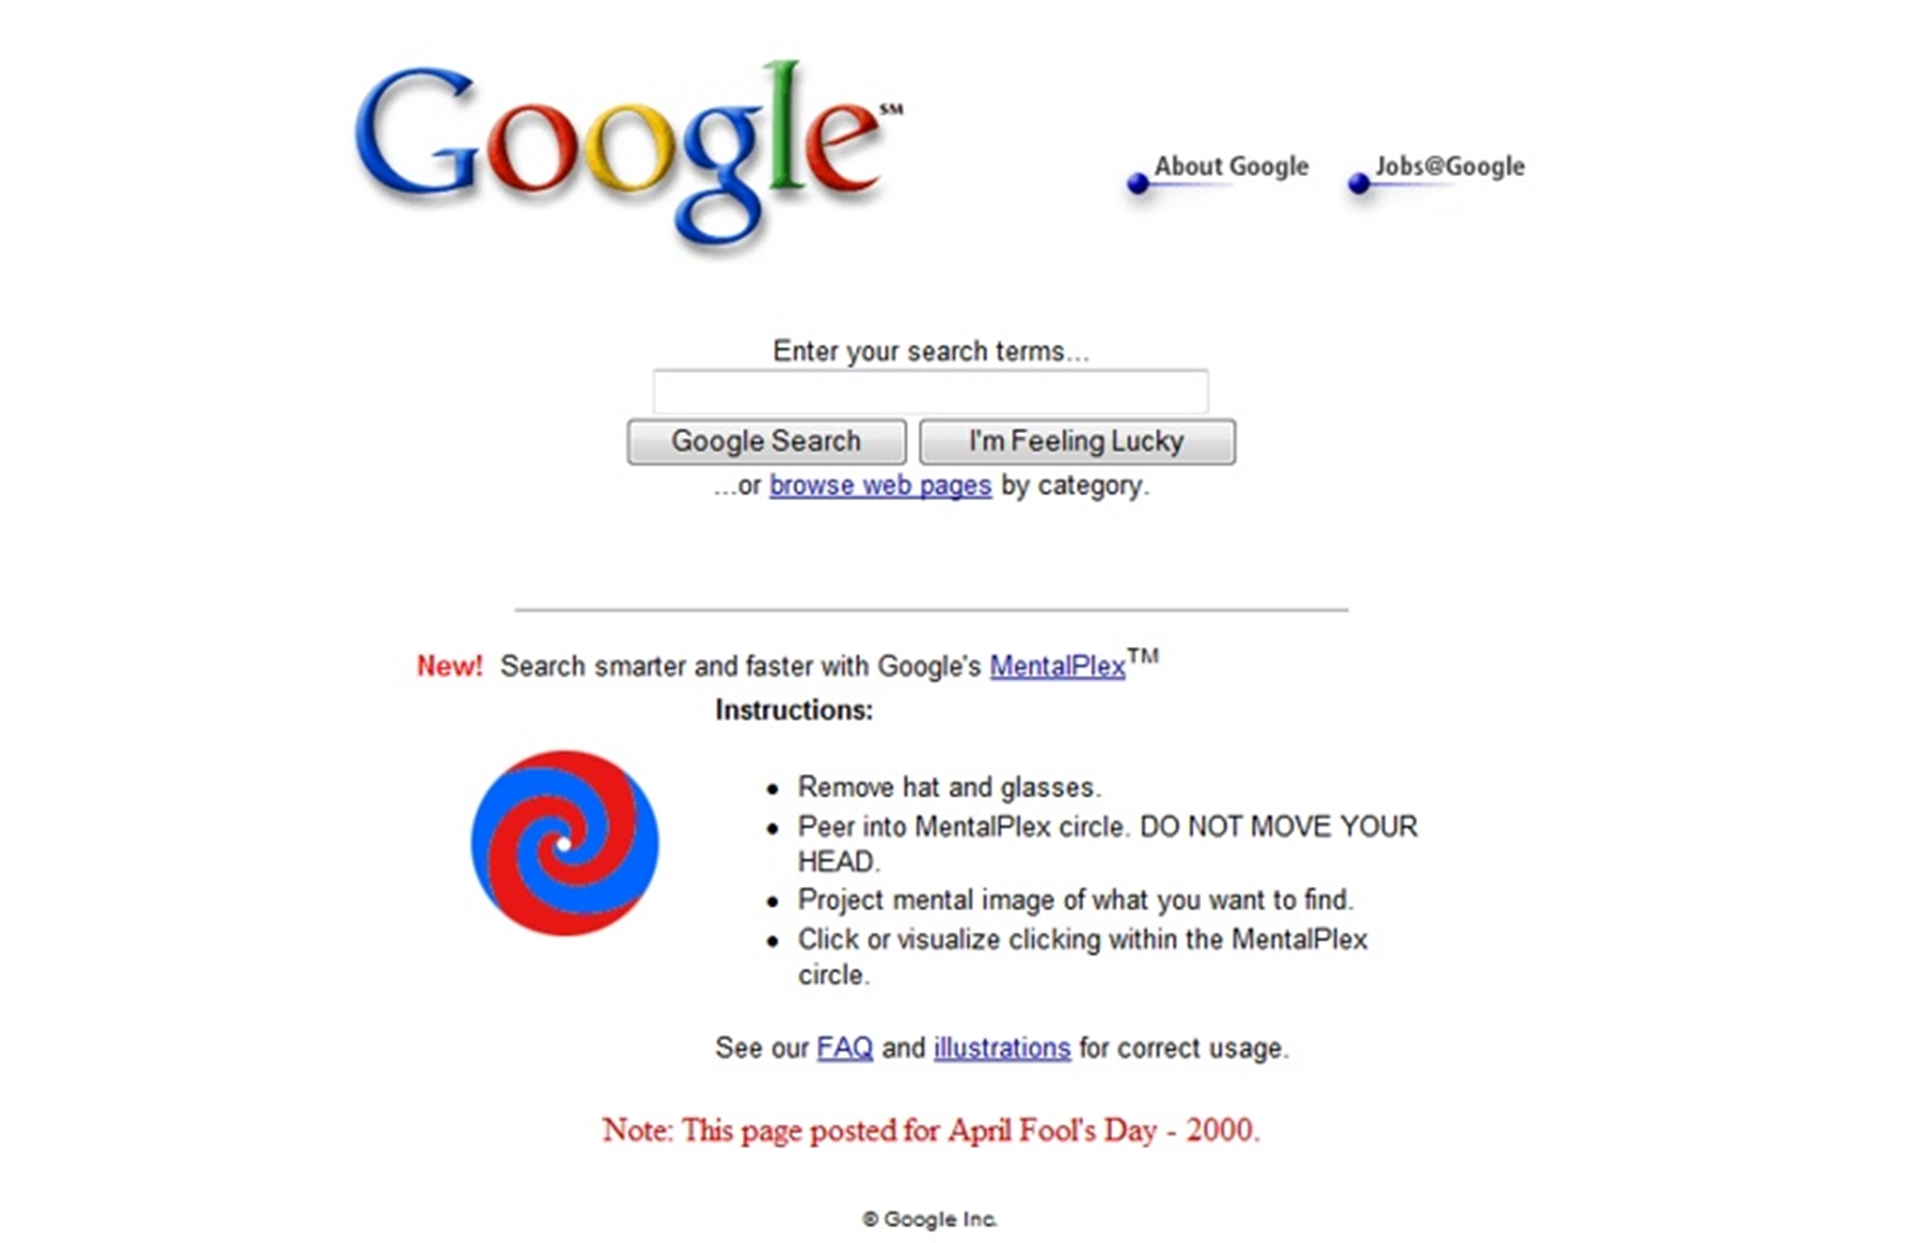 Google April Fool Joke 2000